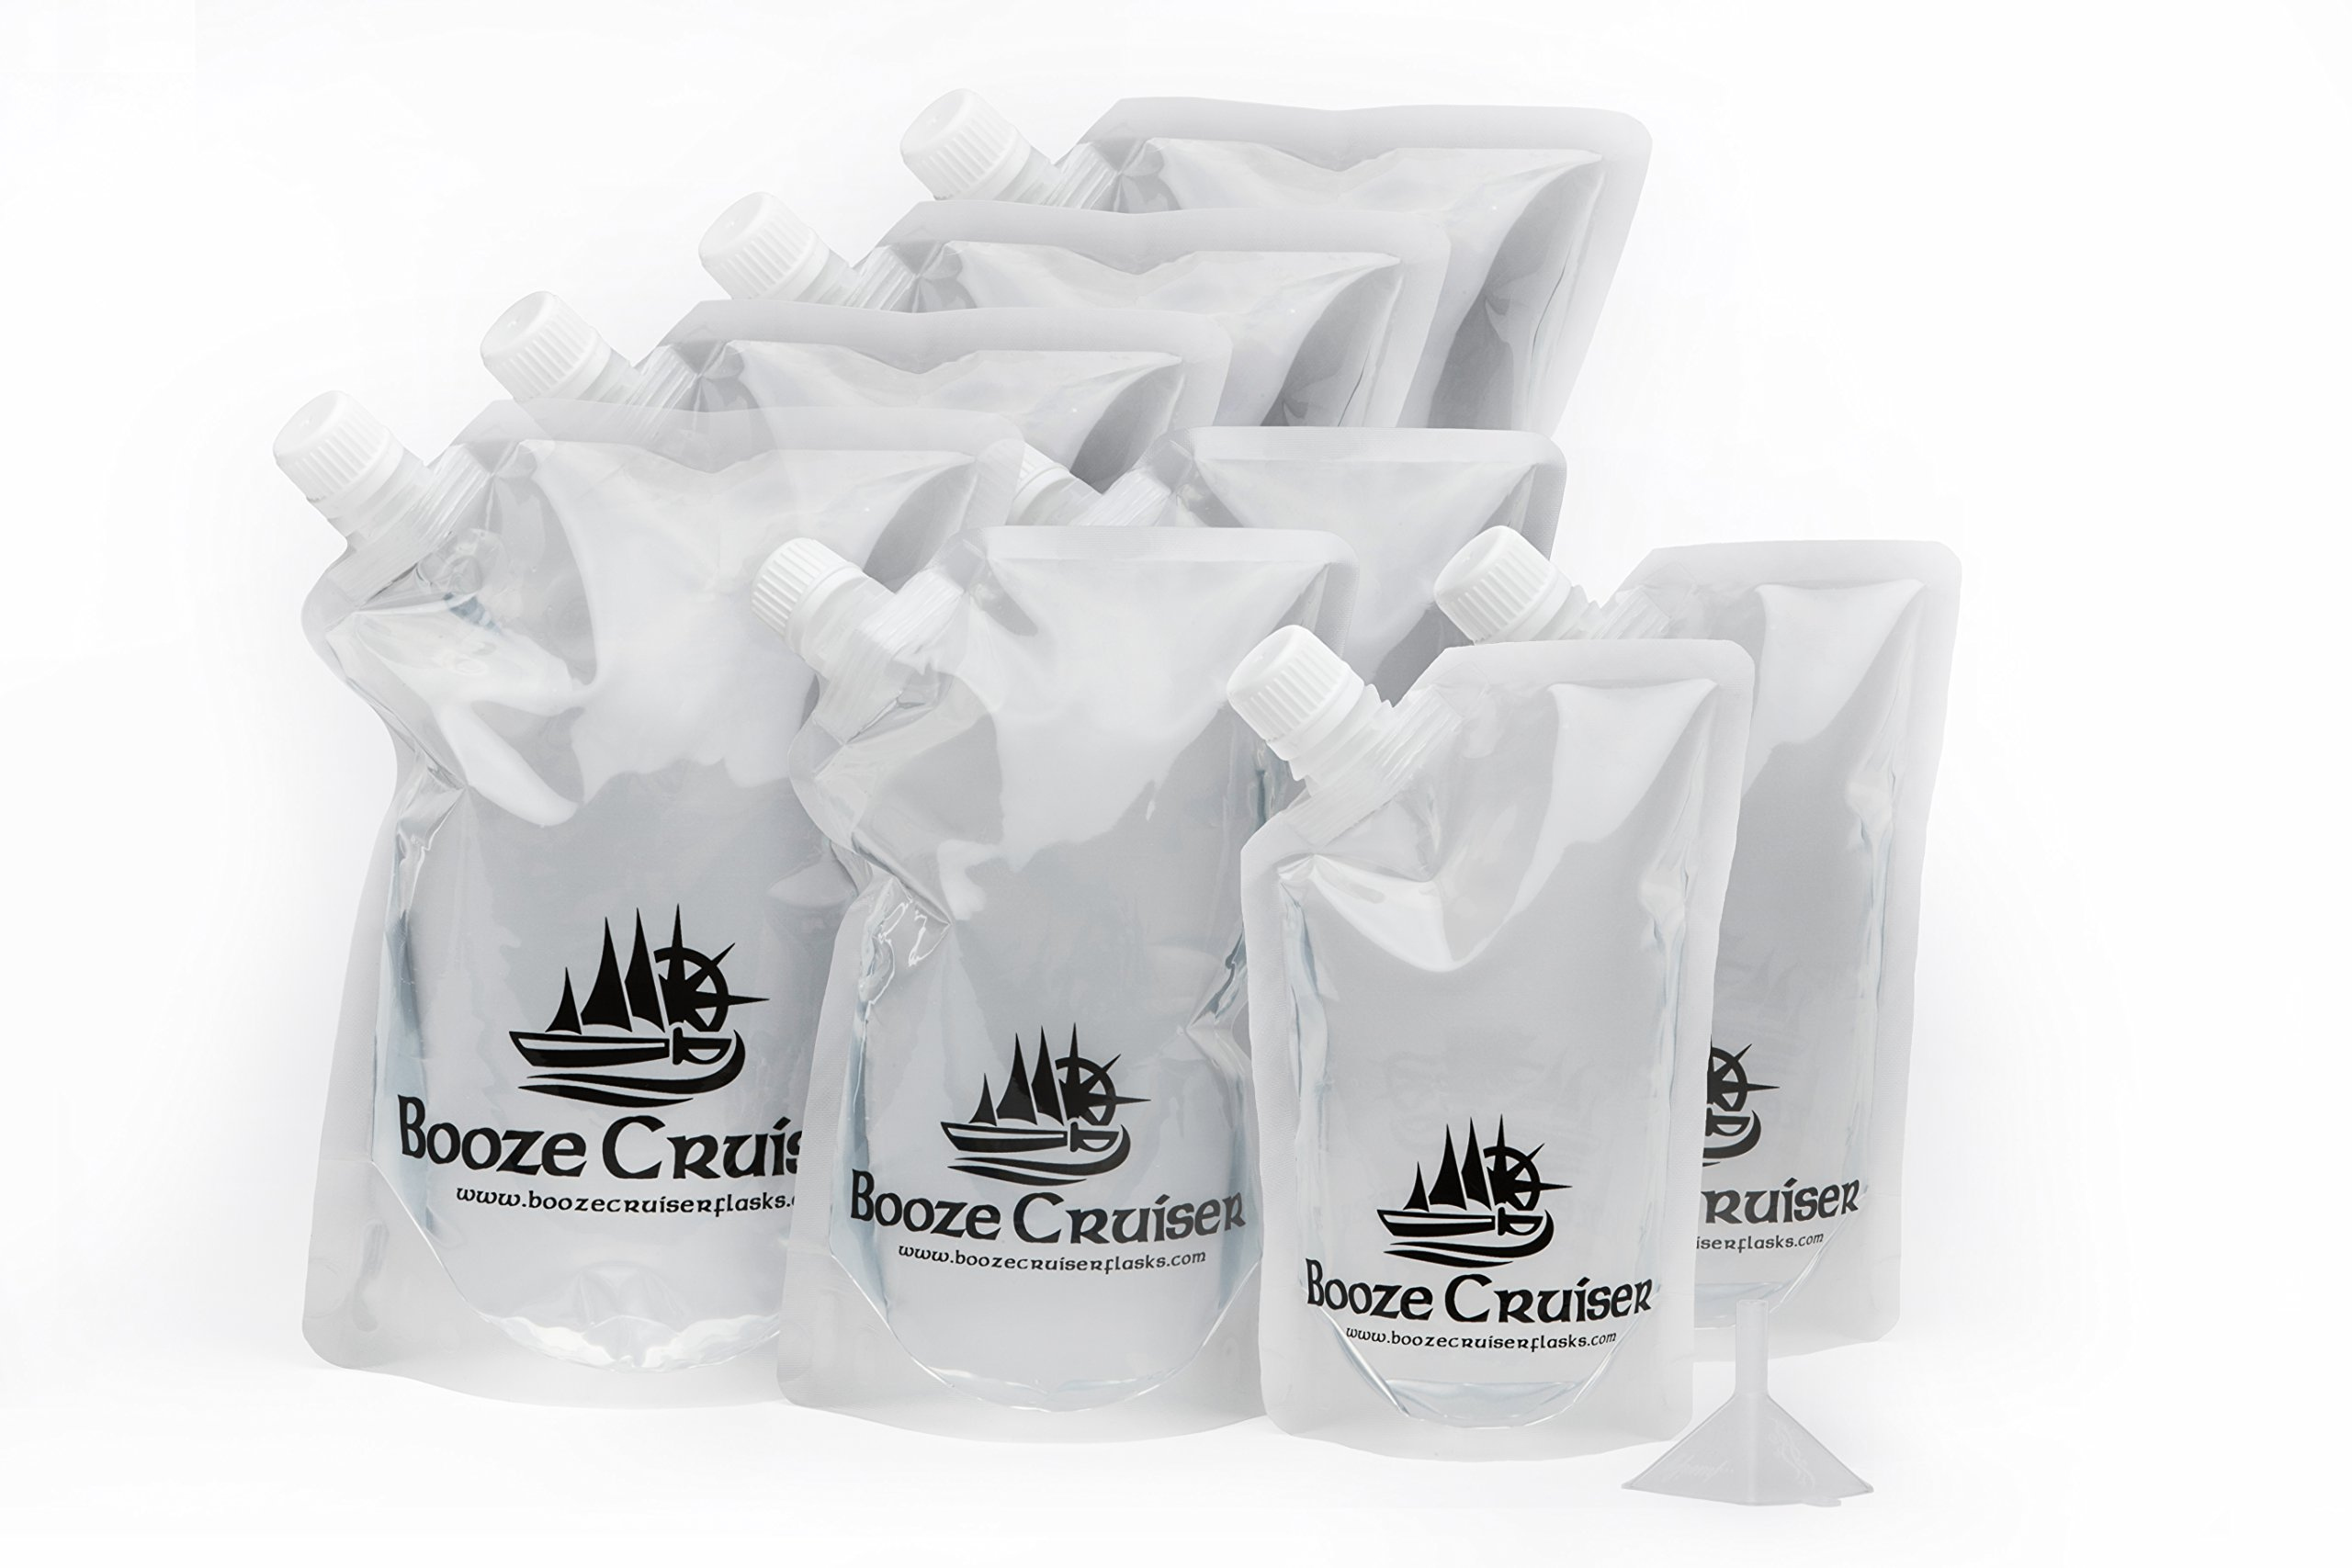 Booze Cruiser Travel Flasks Great for Sneaking Alcohol Anywhere You Want a Rum Runner Cocktail (4x32oz, 2x16oz, 2x8oz + Funnel)